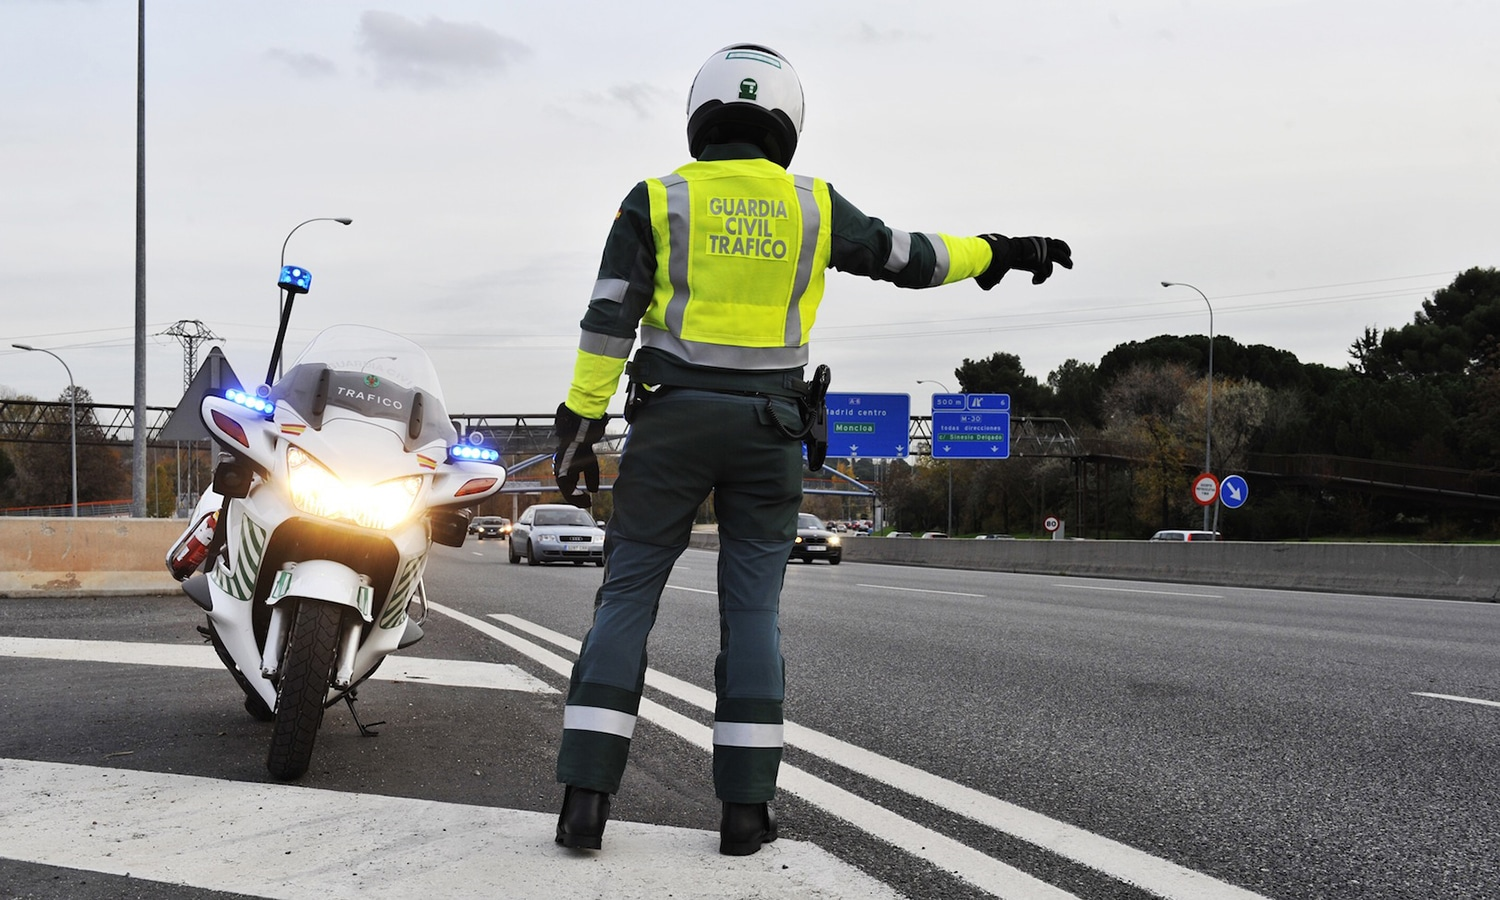 Guardia Civil Tráfico DGT motorista